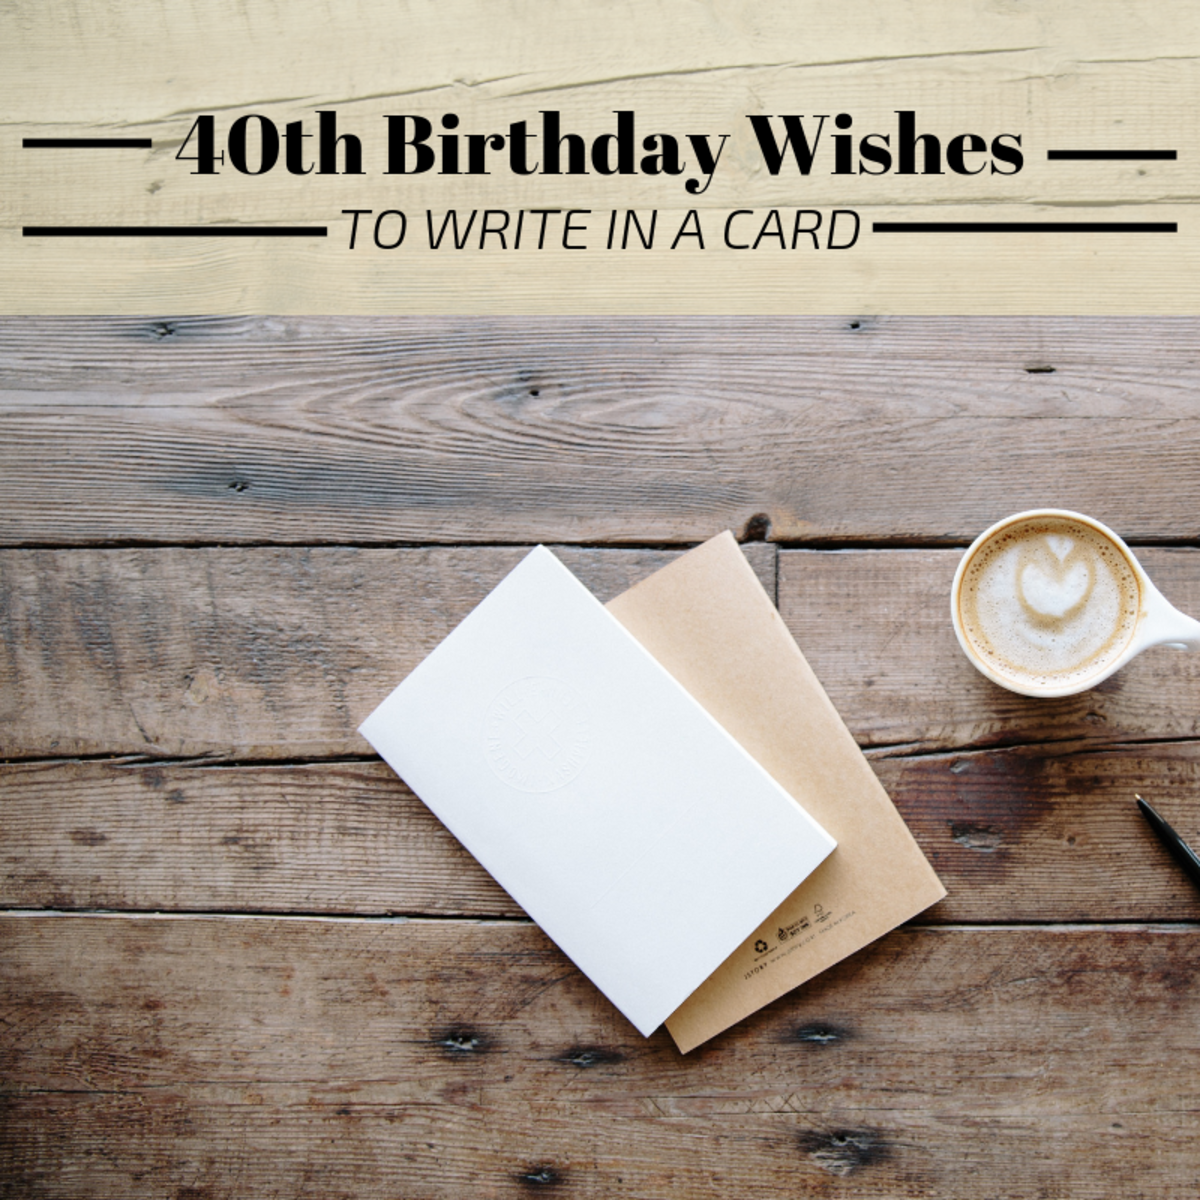 40th Birthday Wishes, Messages, and Poems to Write in a Card